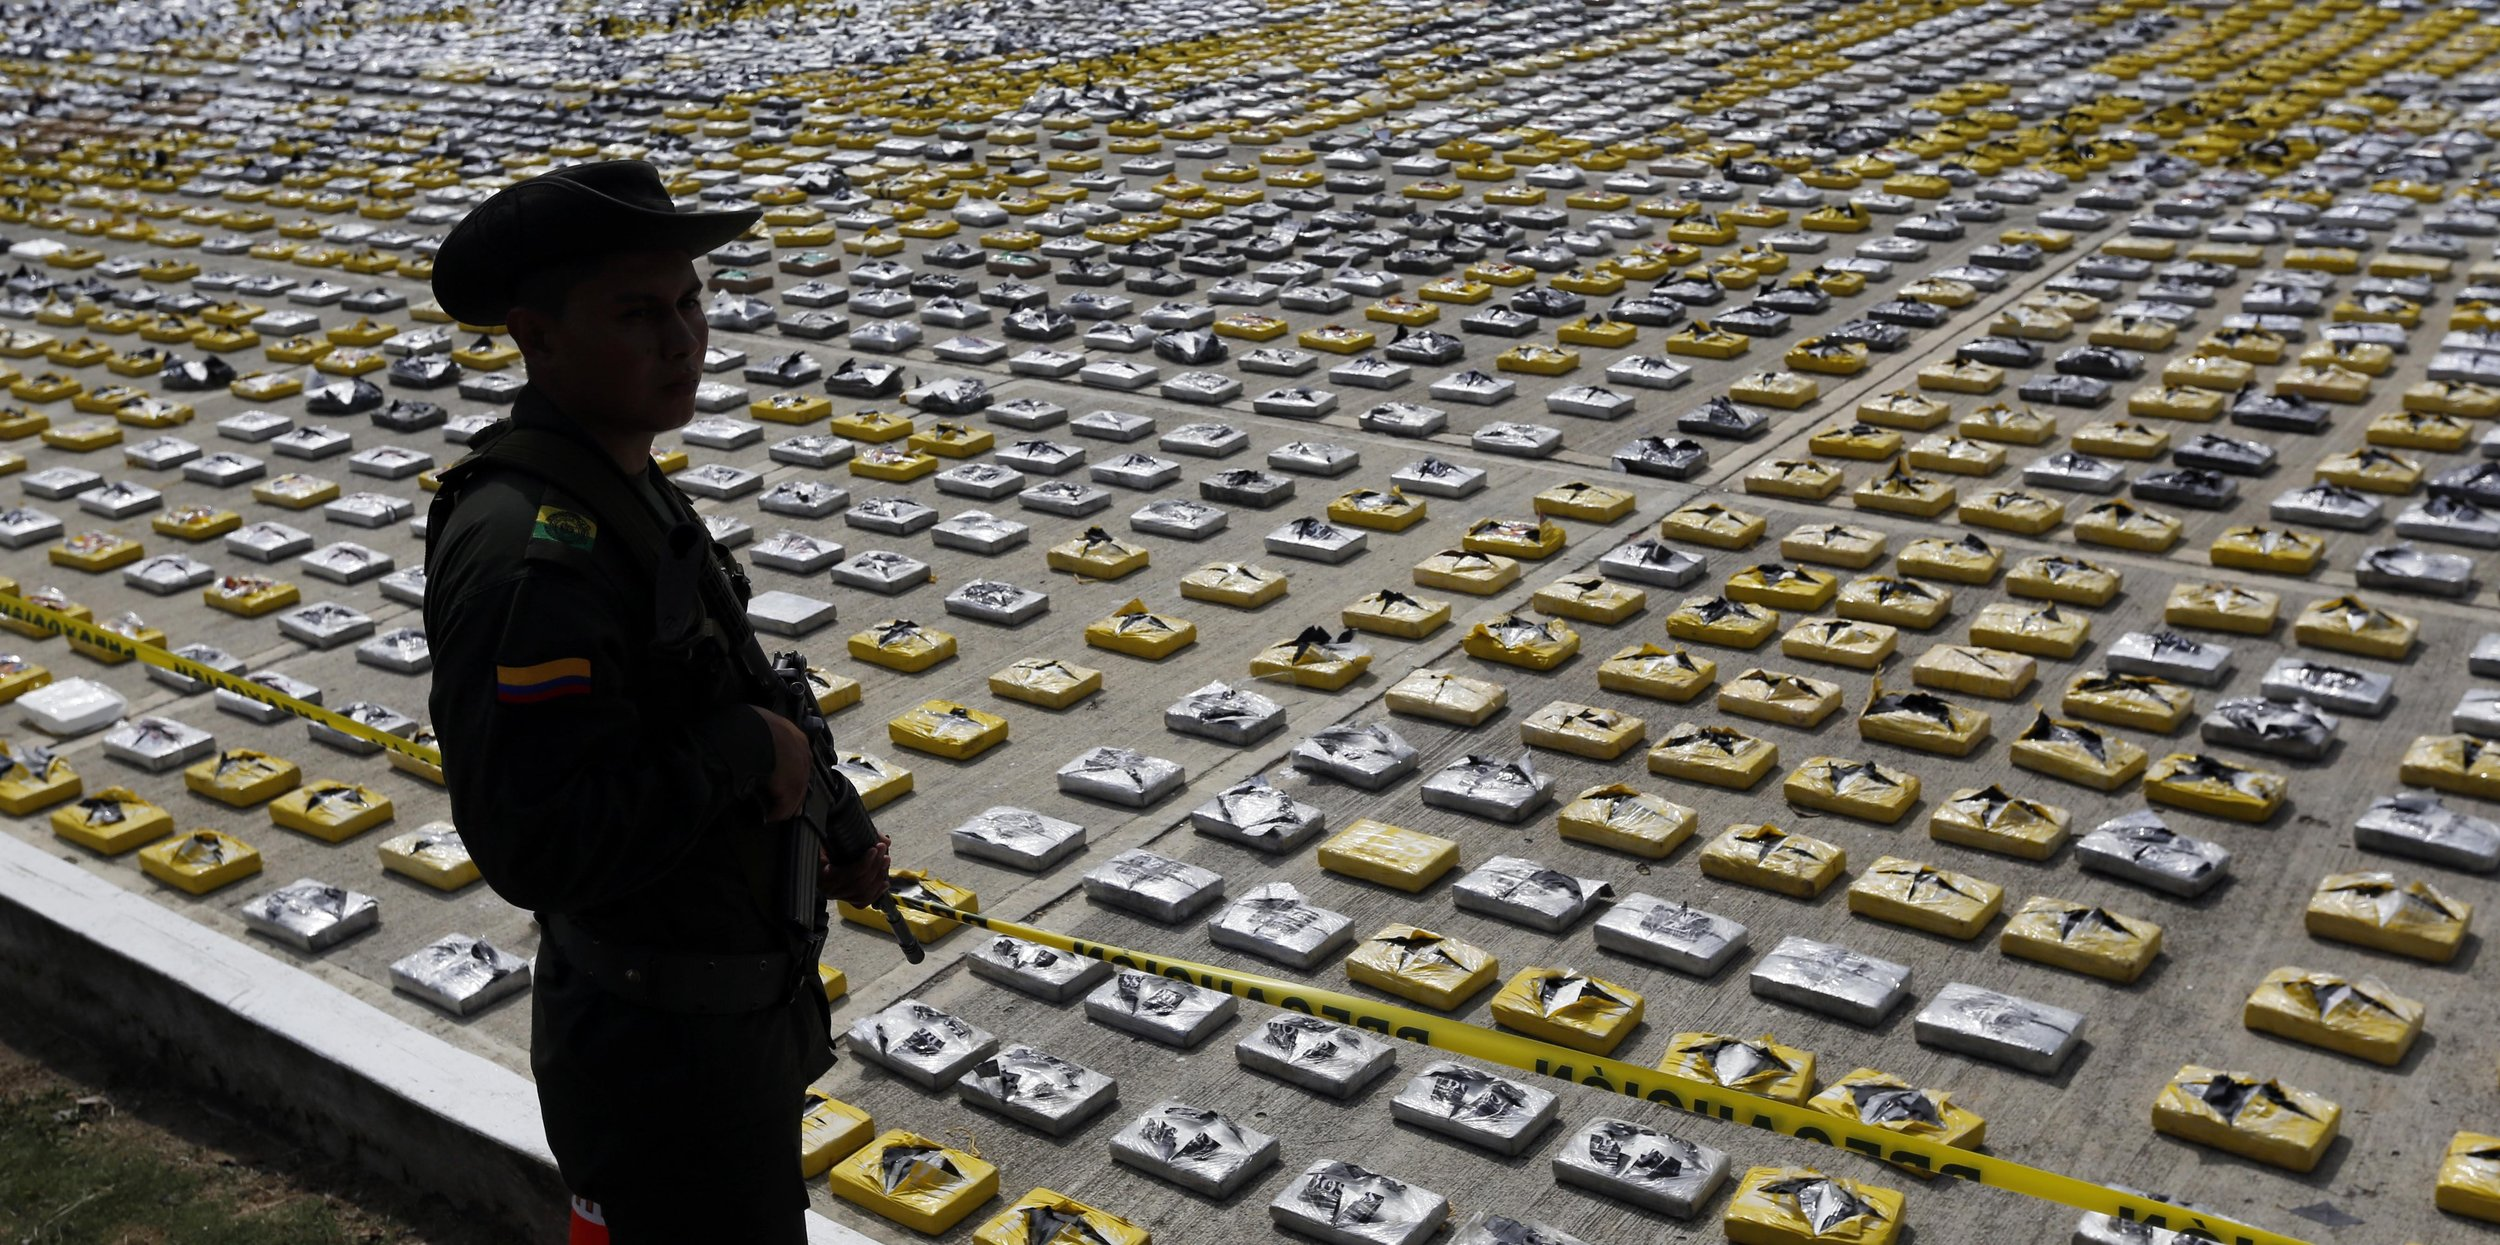 An armed police officer stands guarding packages of seized cocaine in Colombia, 2015